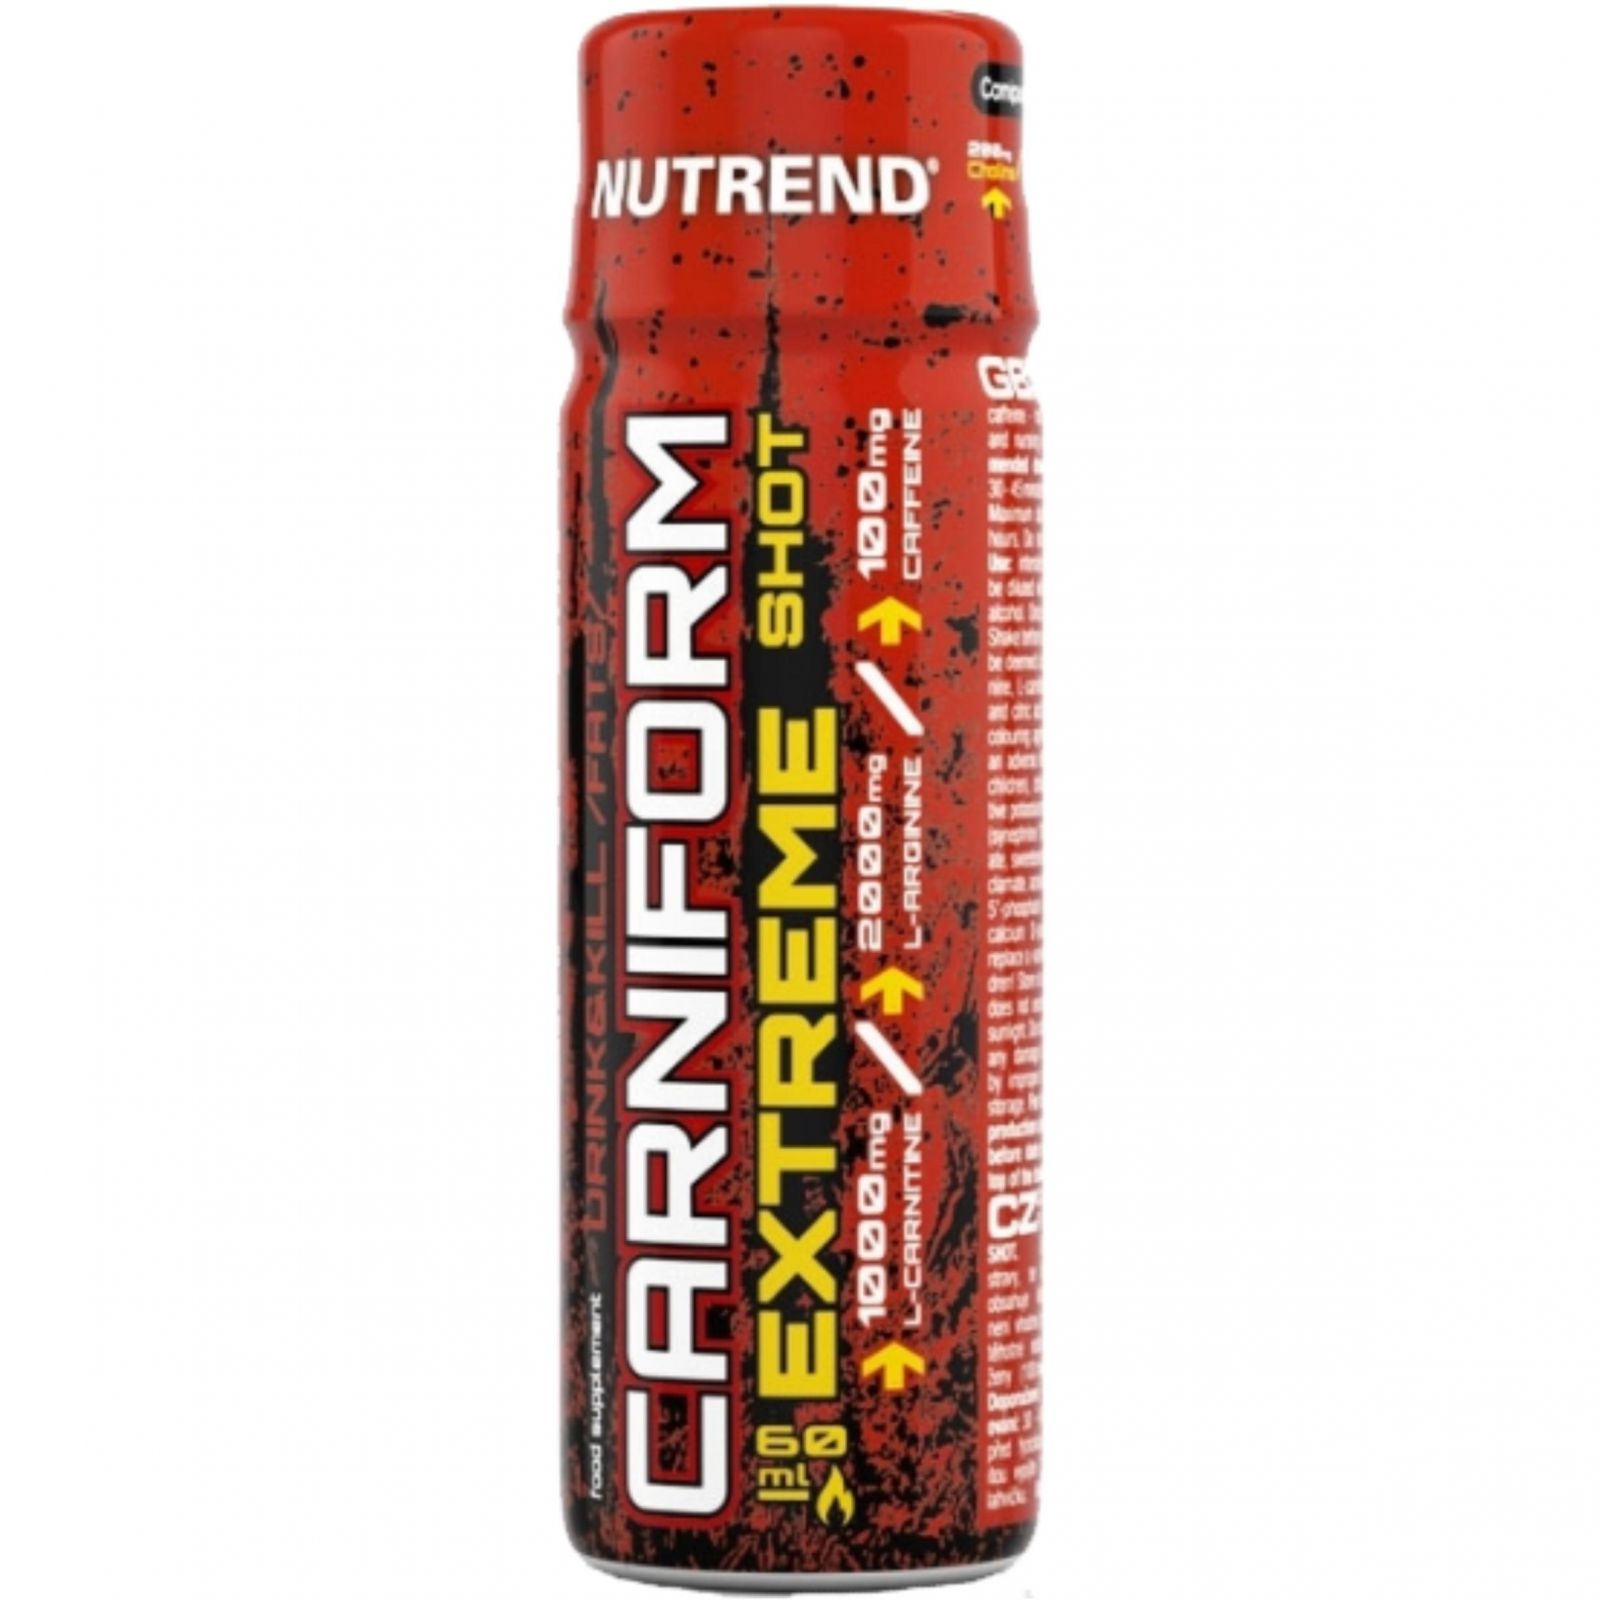 Nutrend CARNIFORM SHOT 60 ml